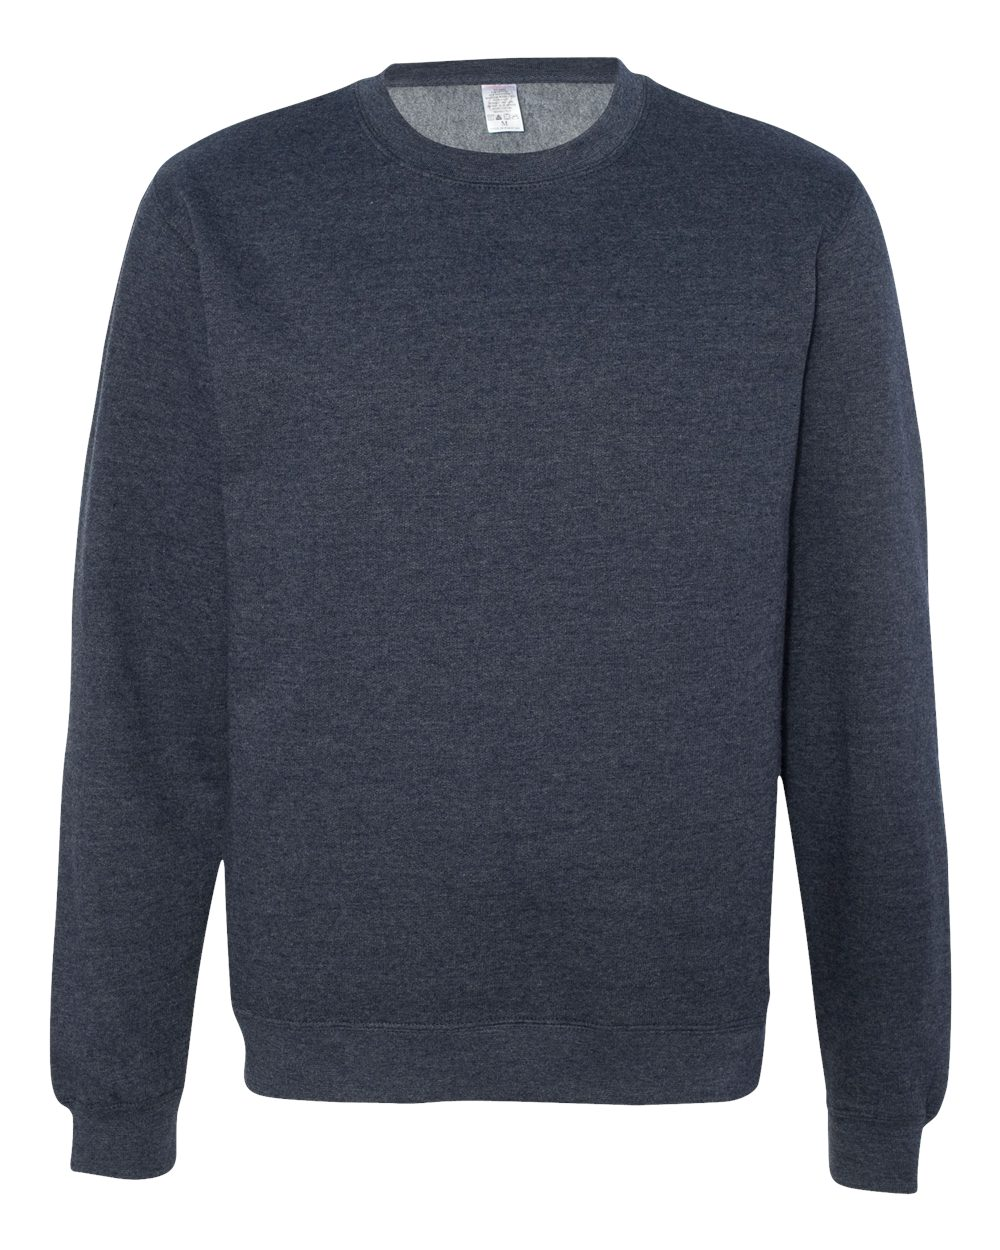 Independent Trading Co. Crewneck SS3000